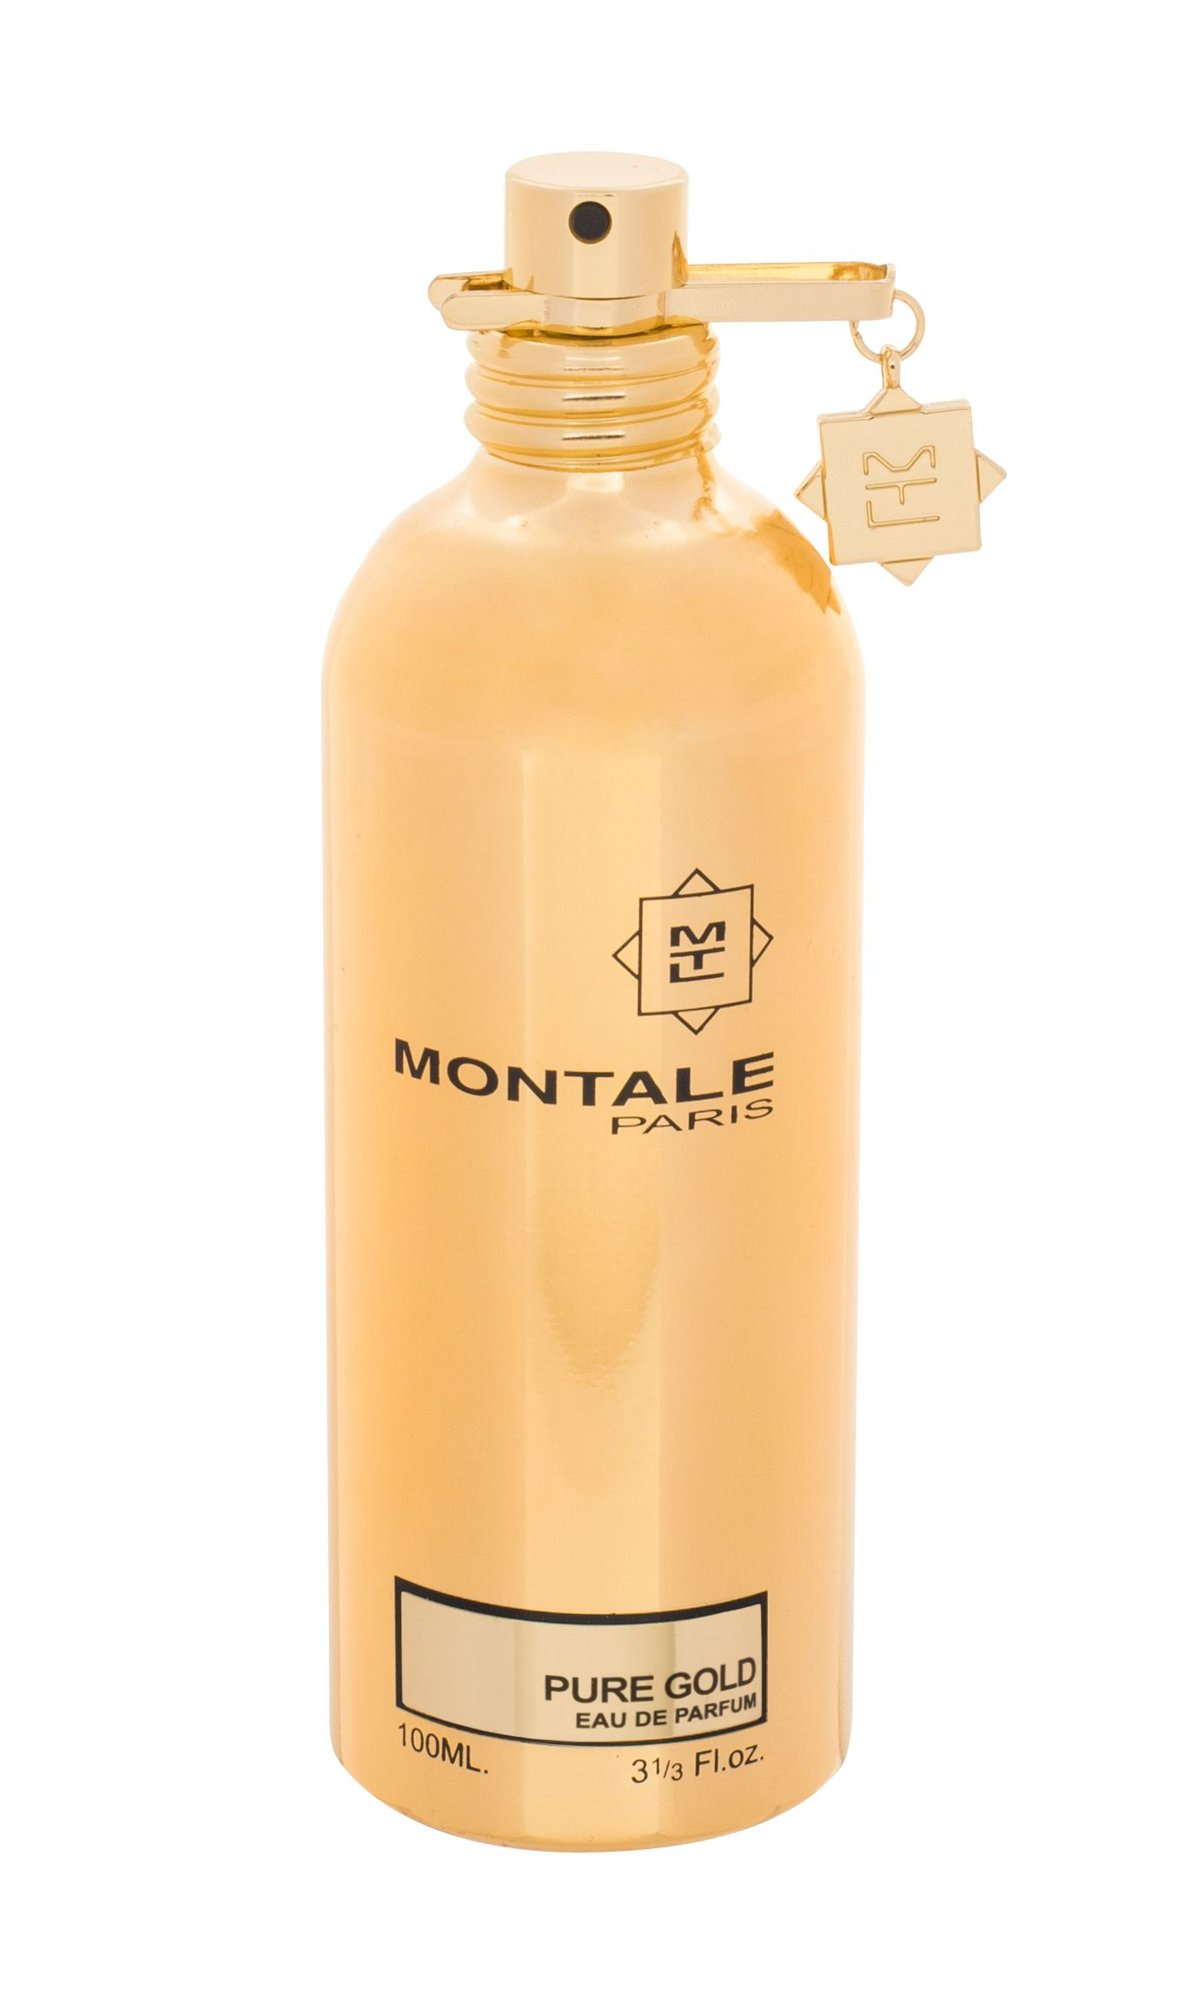 Montale Paris Pure Gold EDP 100ml